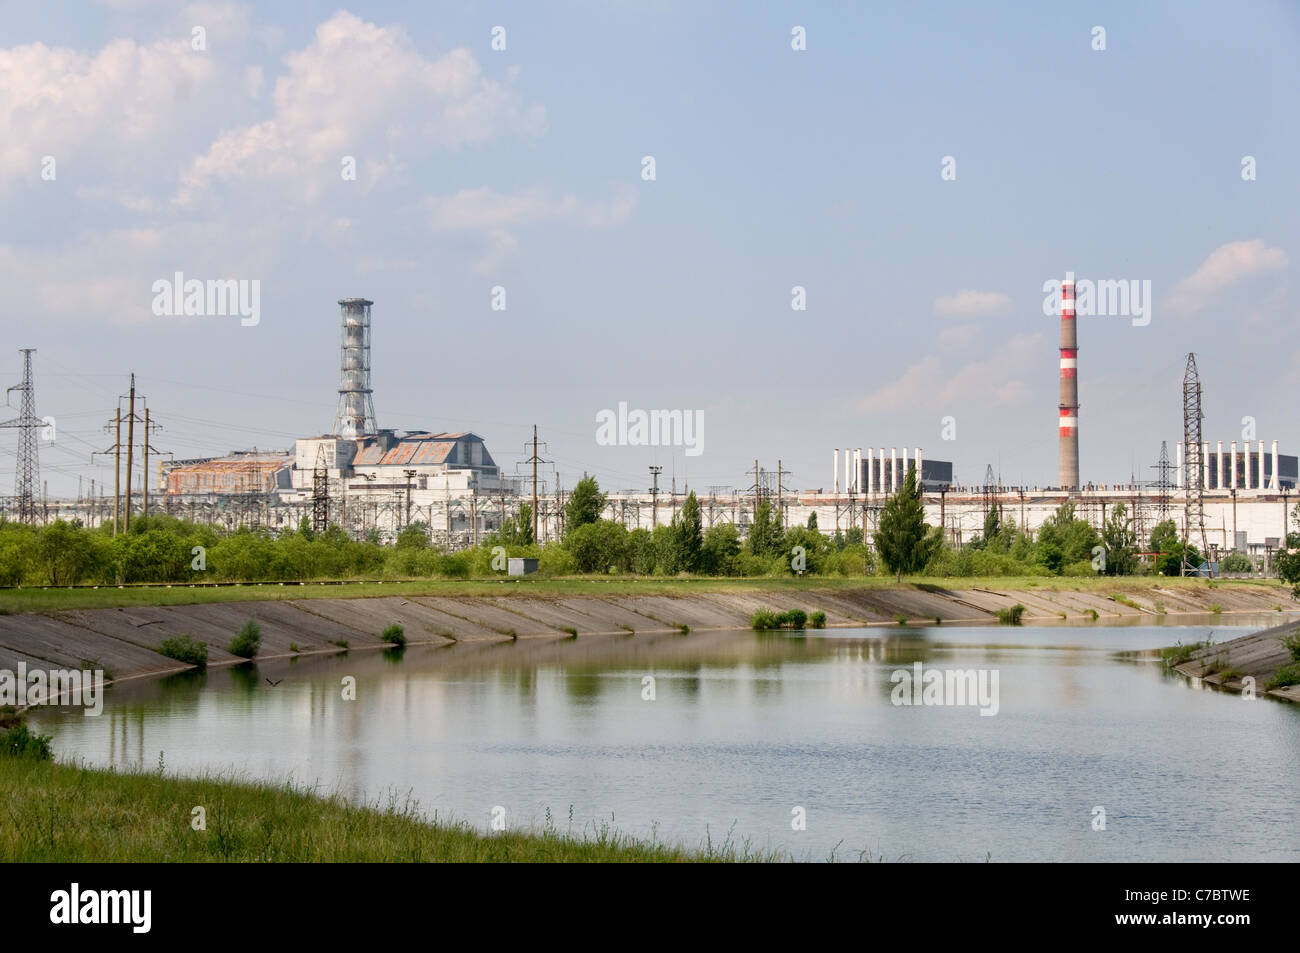 Chernobyl nuclear station in Ukraine - Stock Image